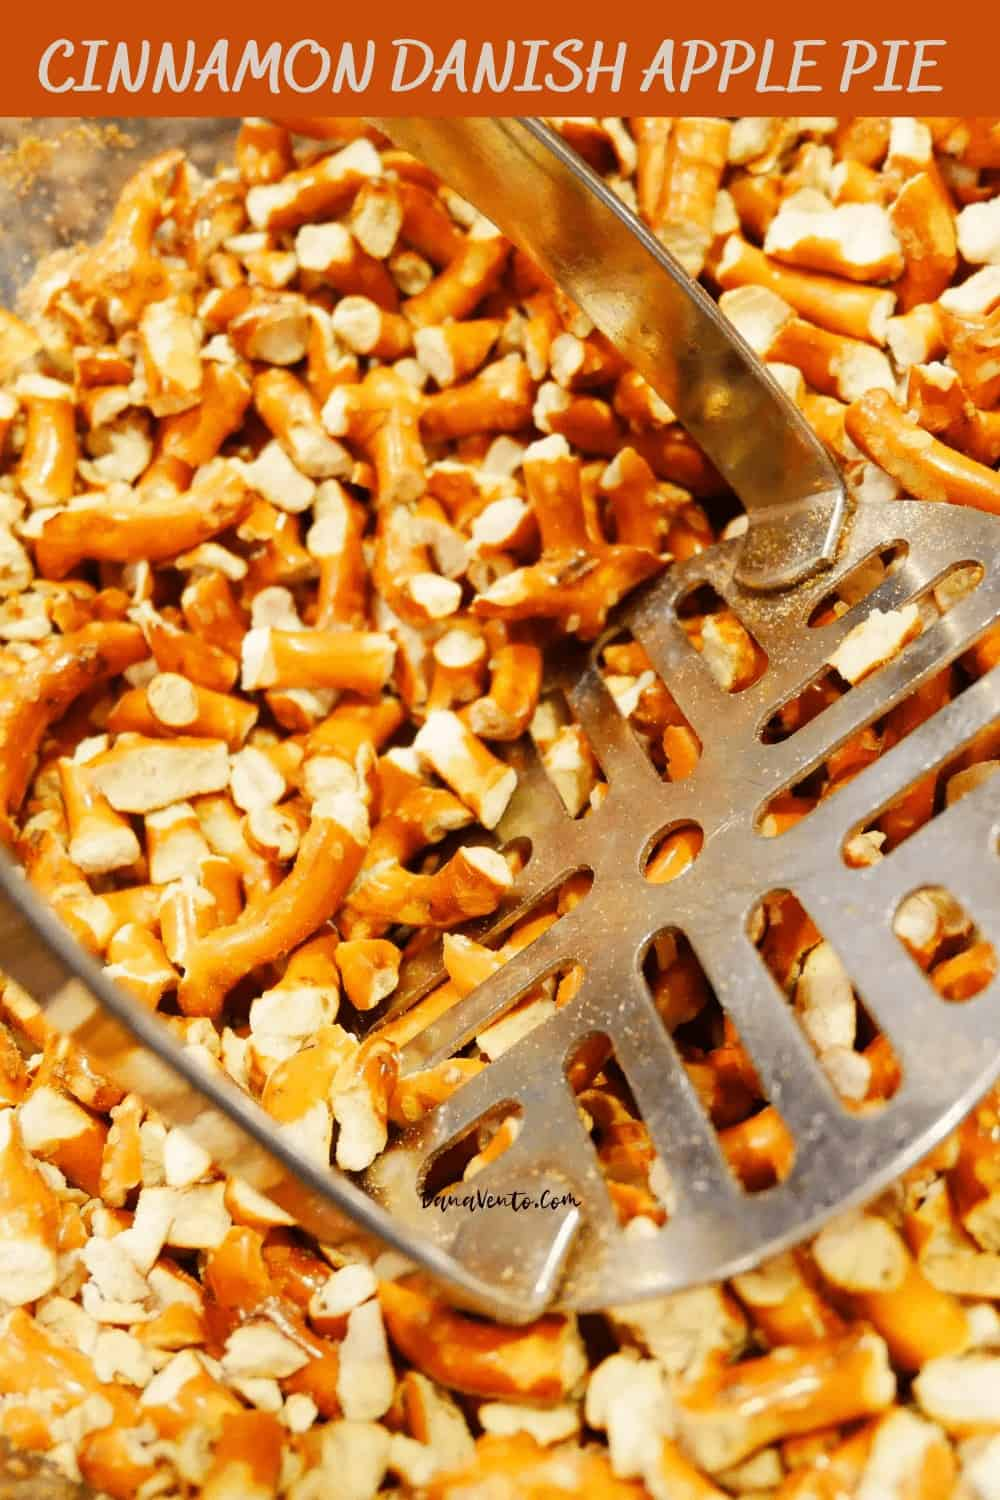 Pretzels being crumbled for Cinnamon Danish Apple PIe